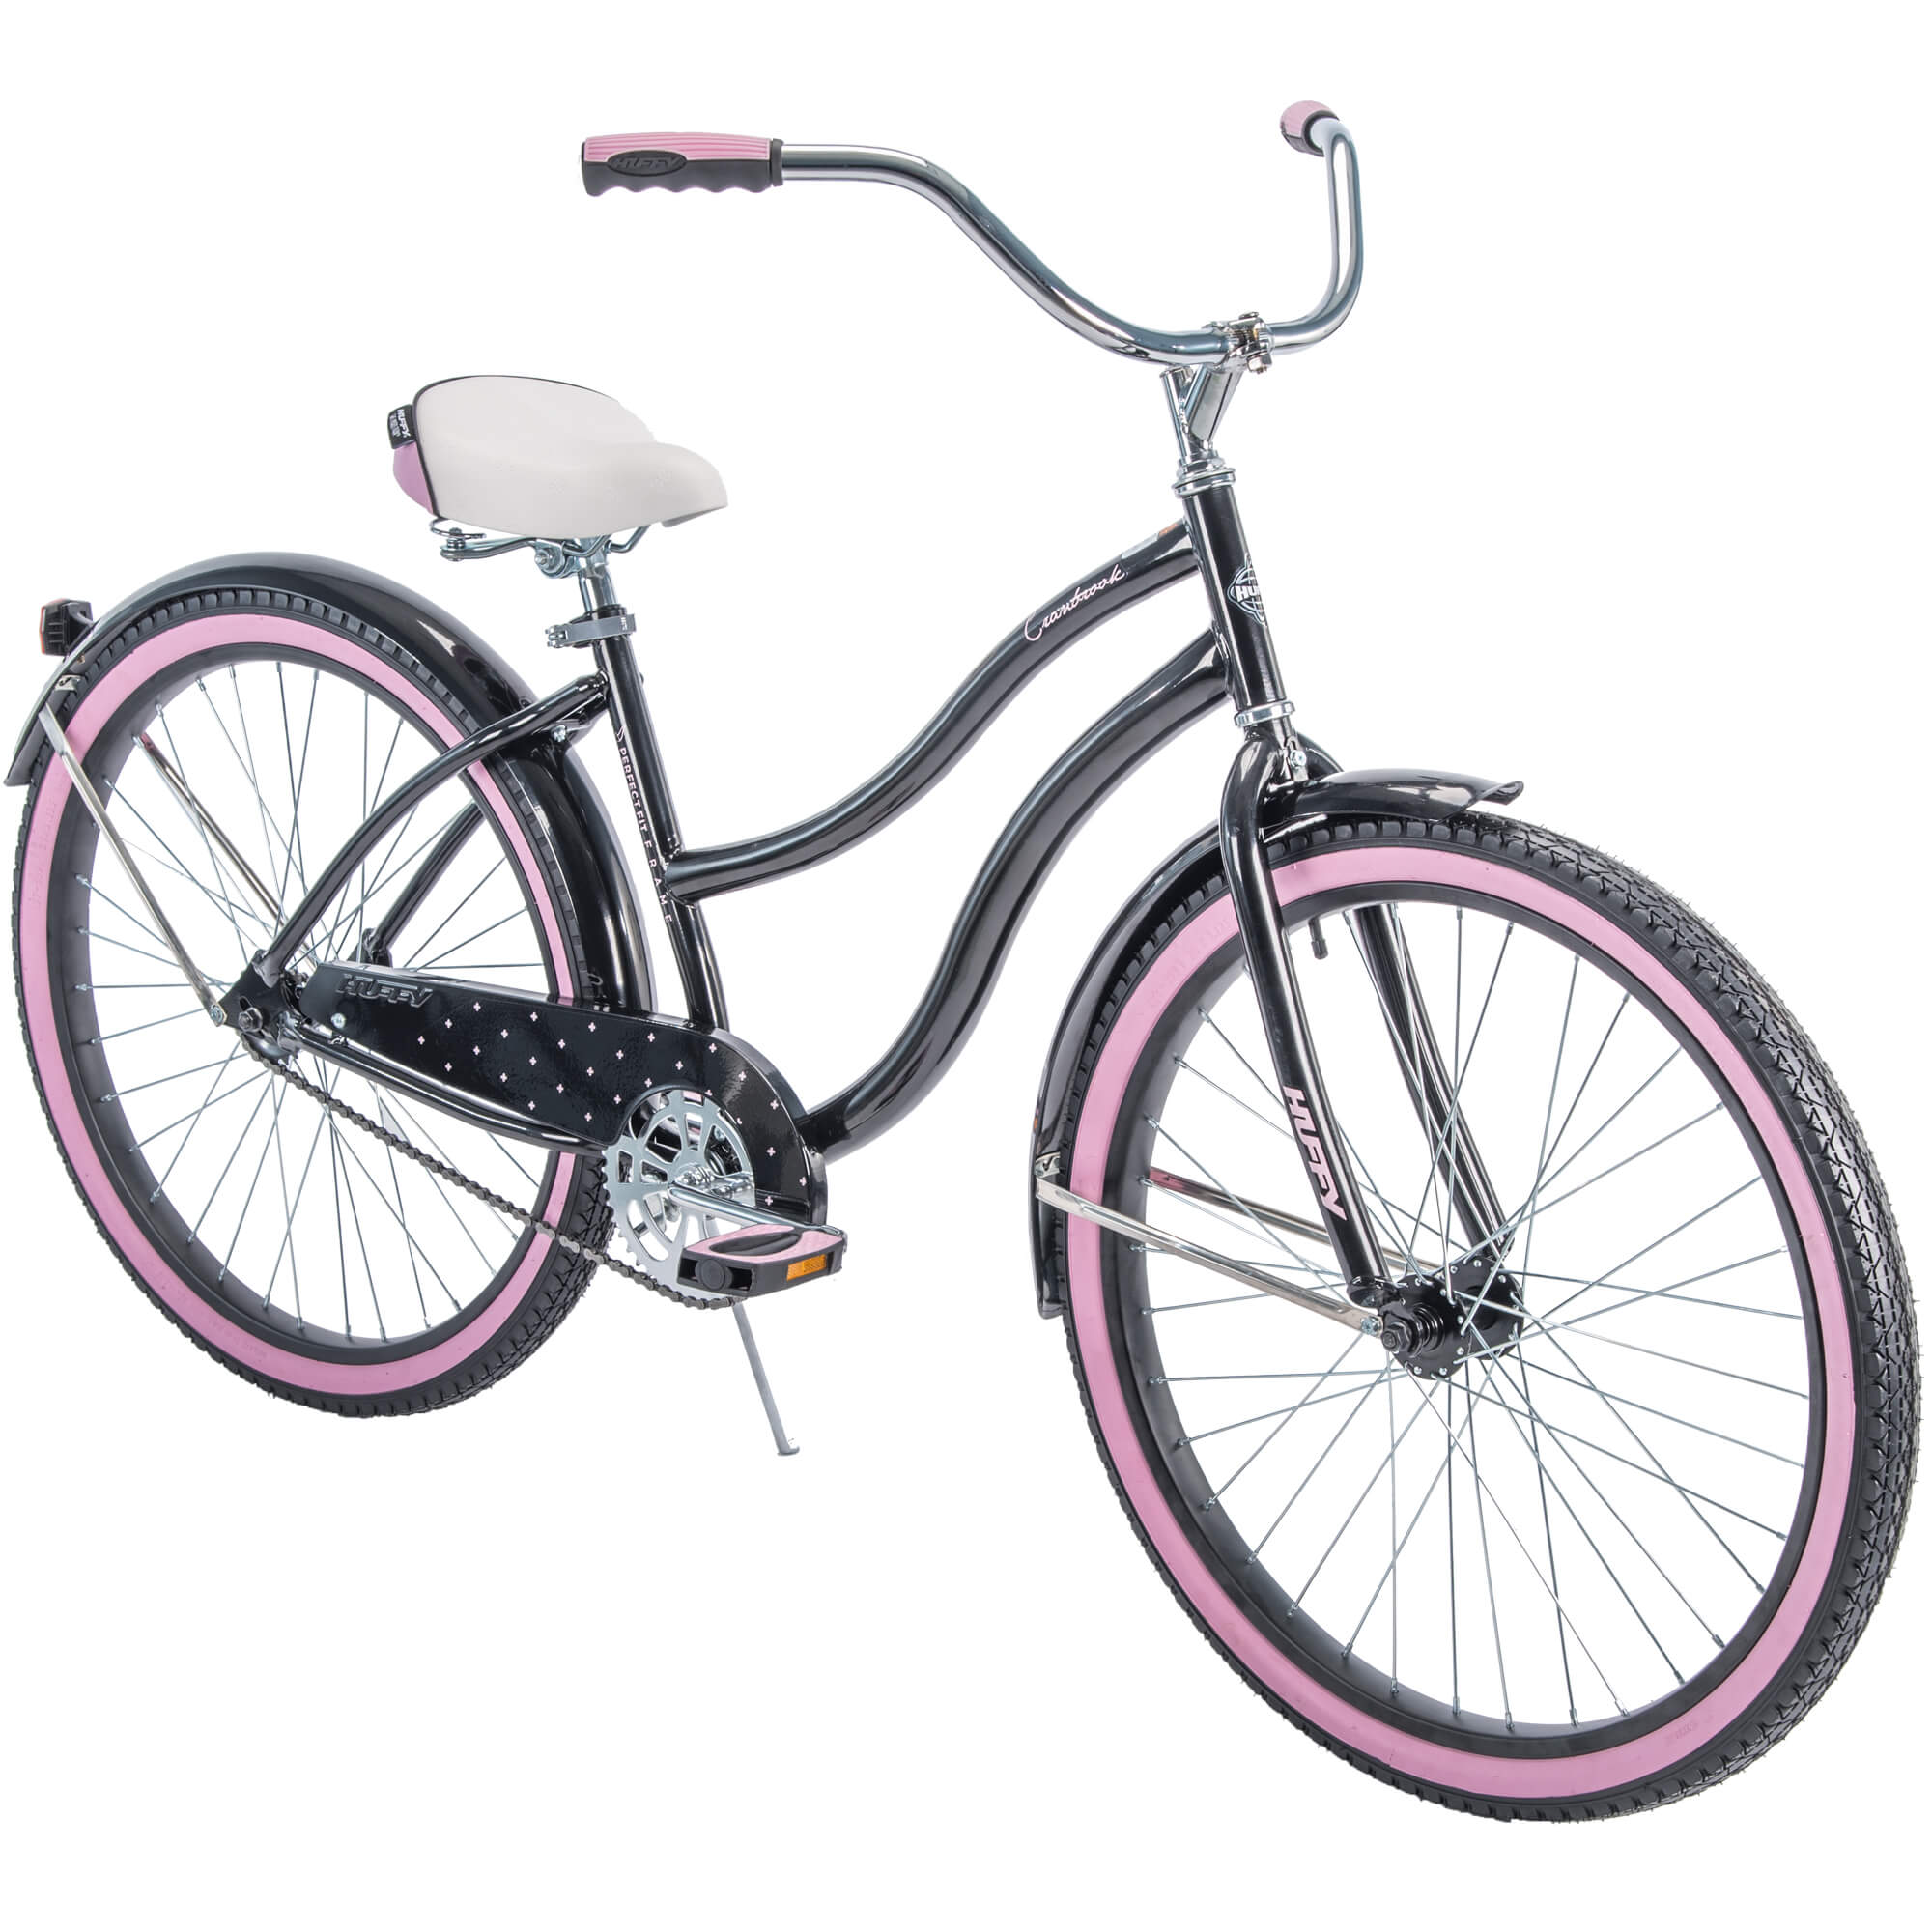 "Huffy 26"" Cranbrook Women's Cruiser Bike with Perfect Fit Frame, Black"